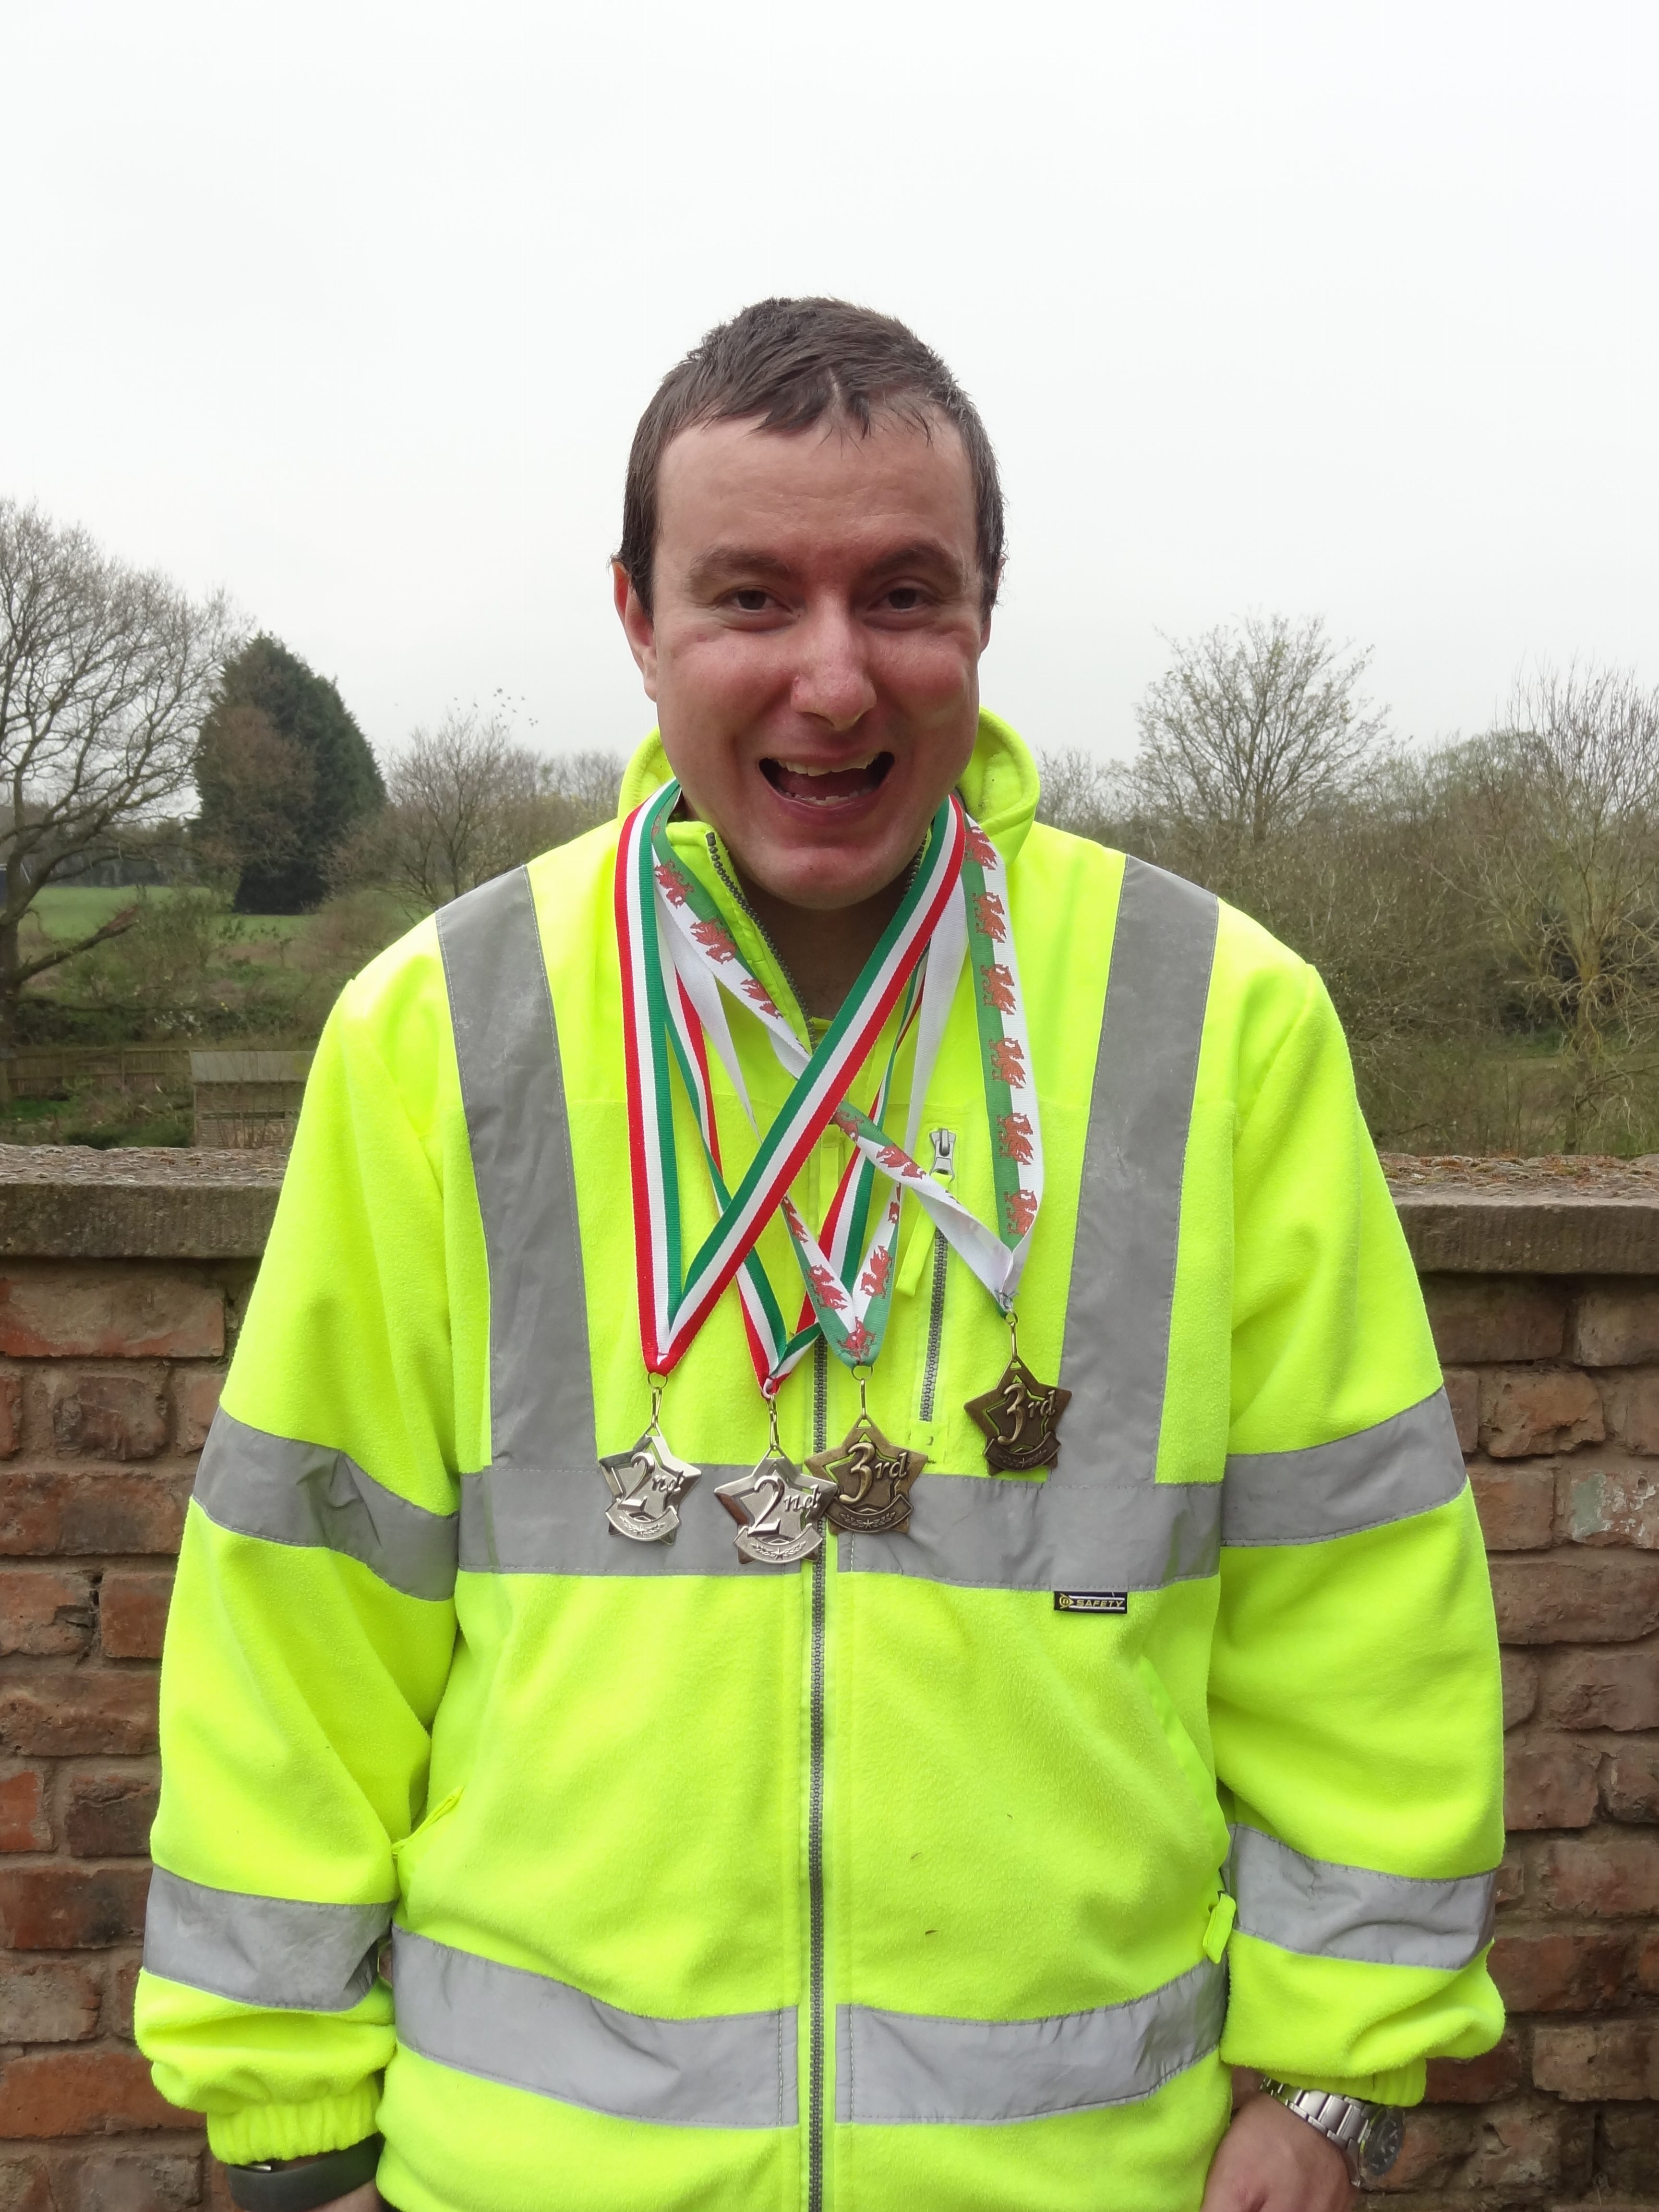 Damon wins medals at Cardiff Athletics Event